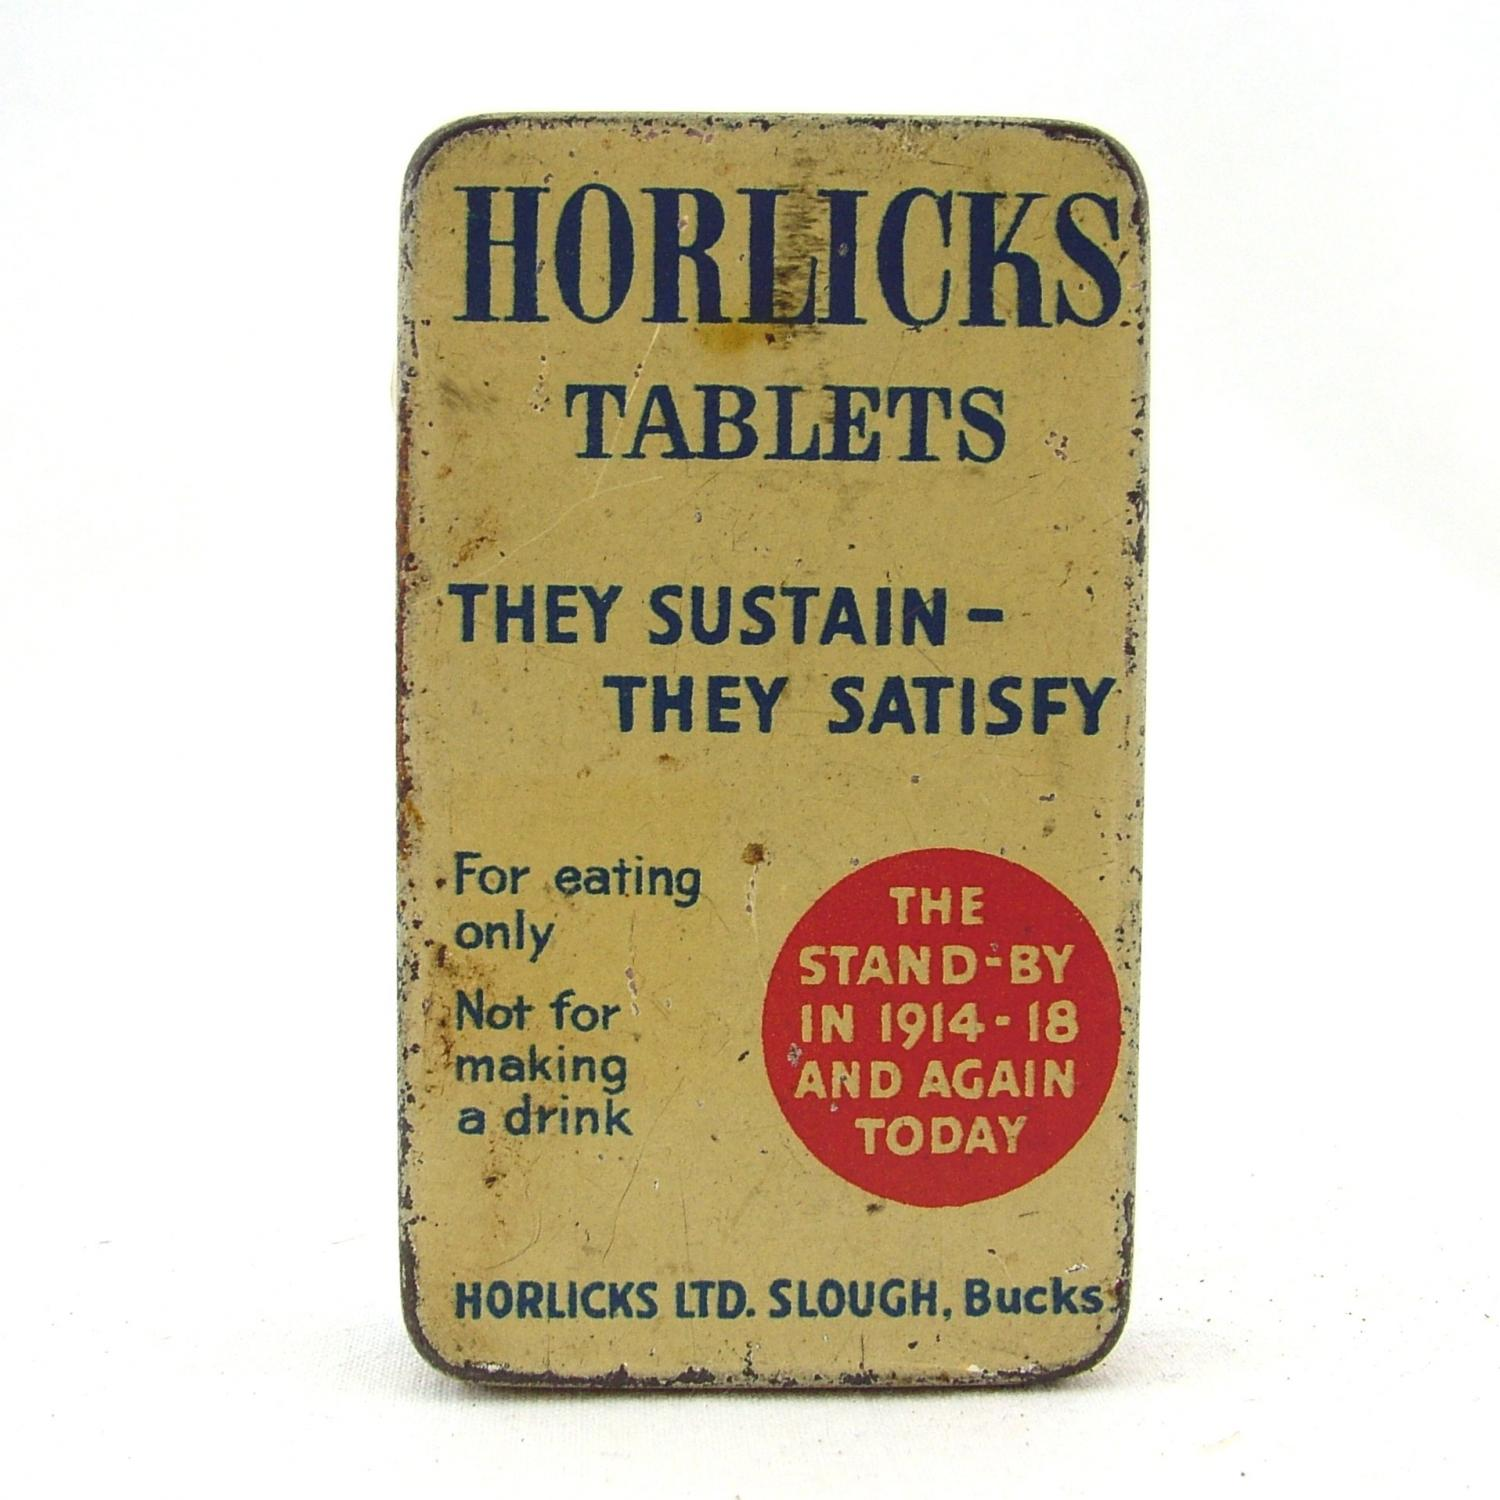 Horlicks ration tin